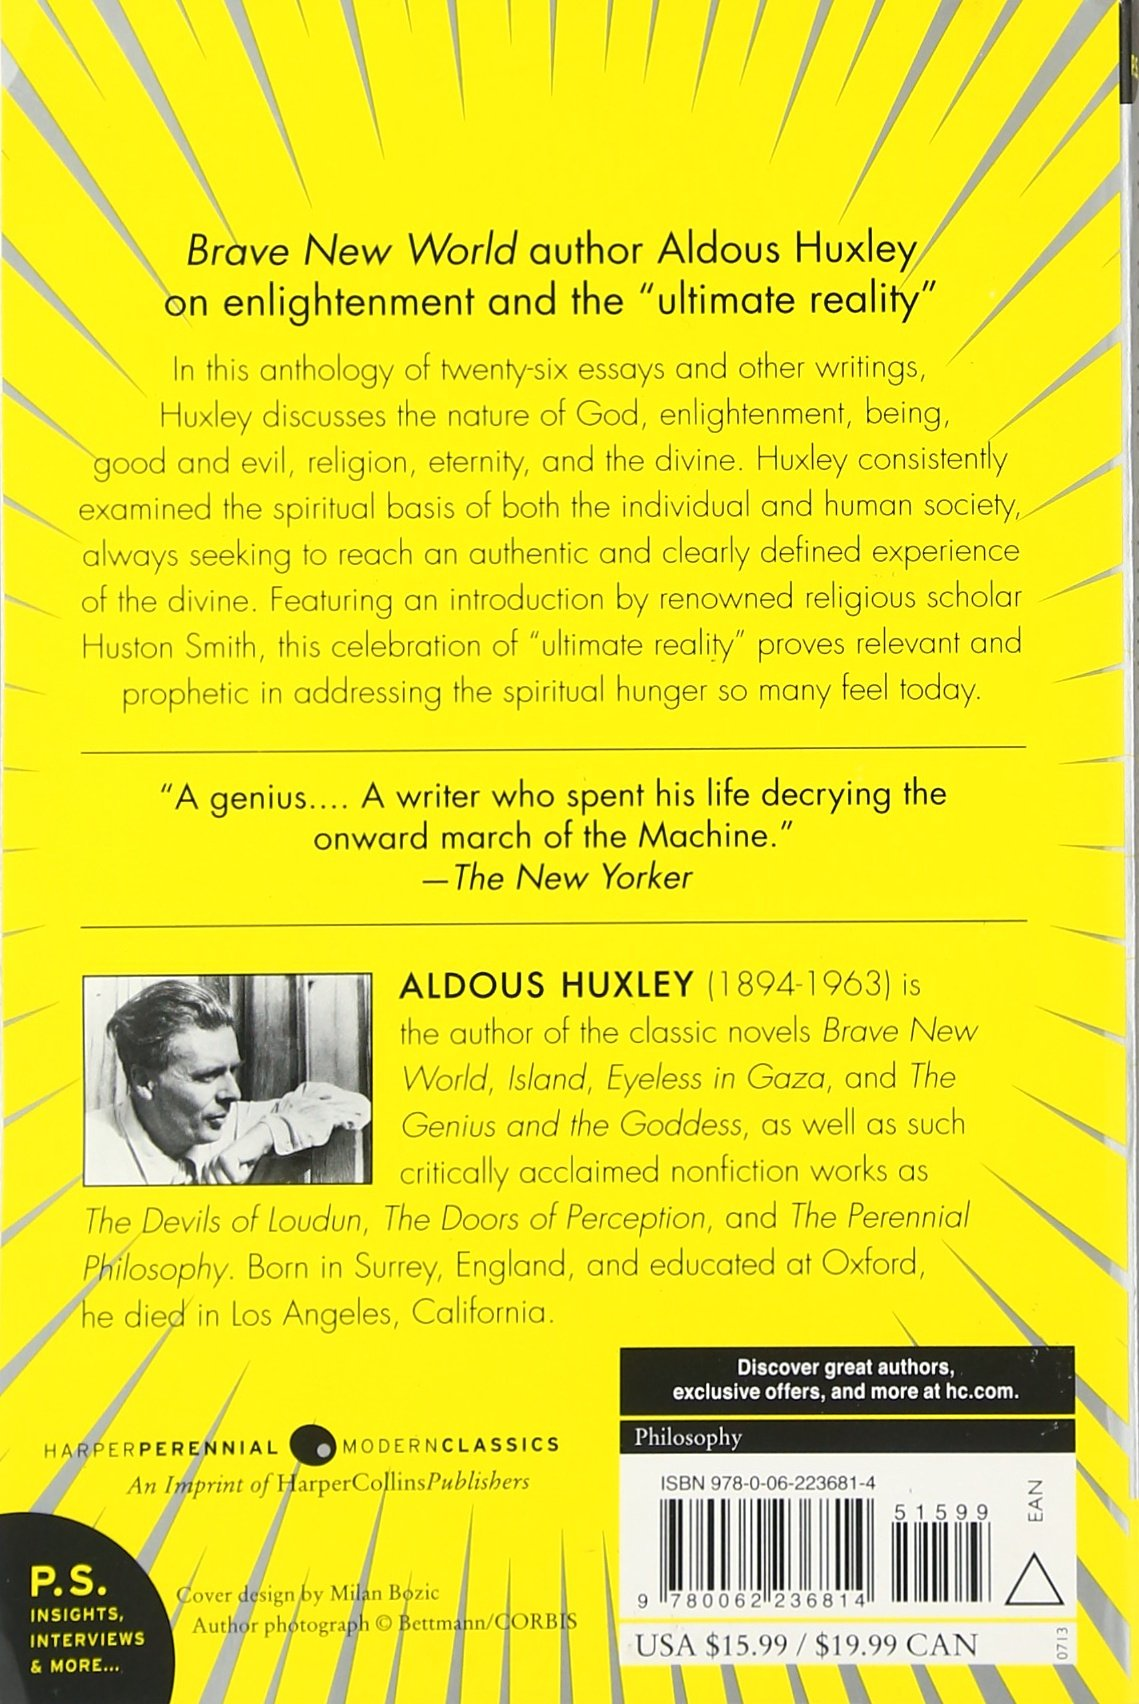 aldous huxley essays the divine in selected writings on  the divine in selected writings on enlightenment aldous the divine in selected writings on enlightenment aldous